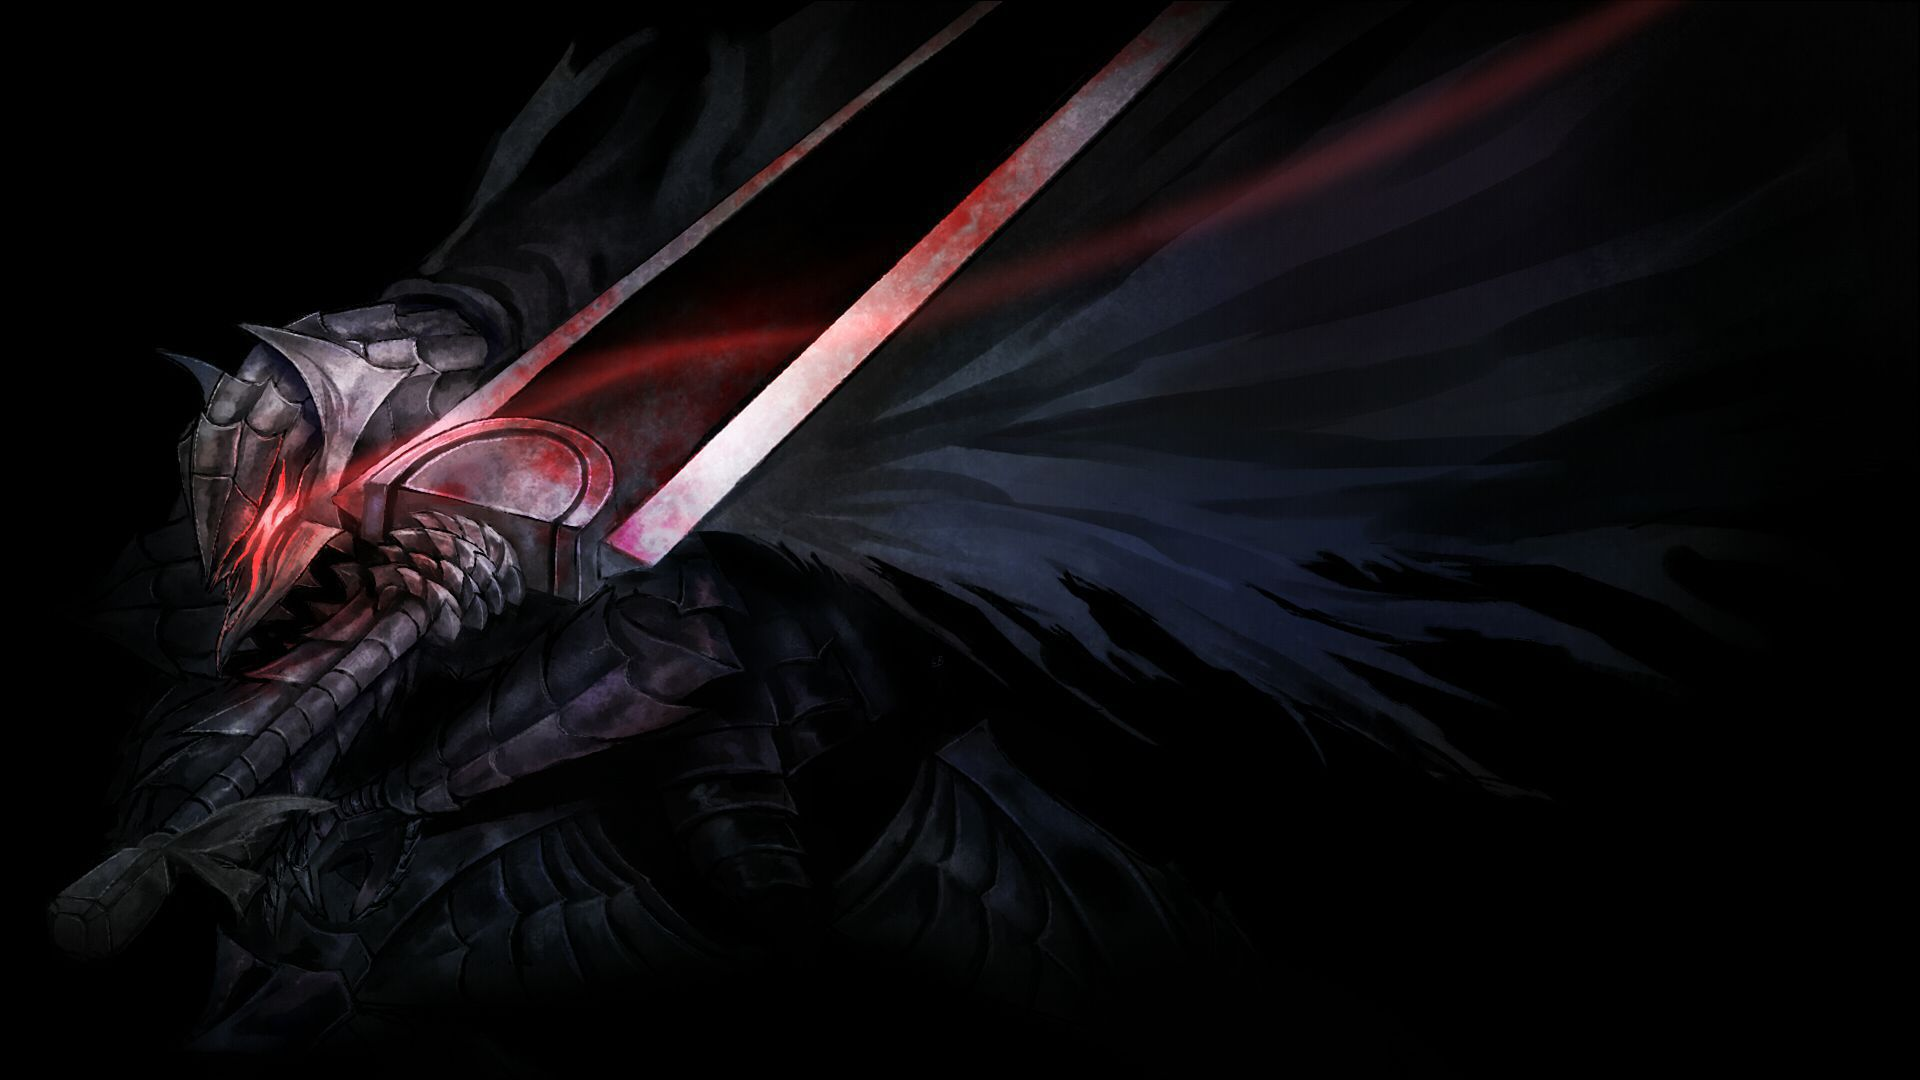 berserk wallpapers free download - photo #23